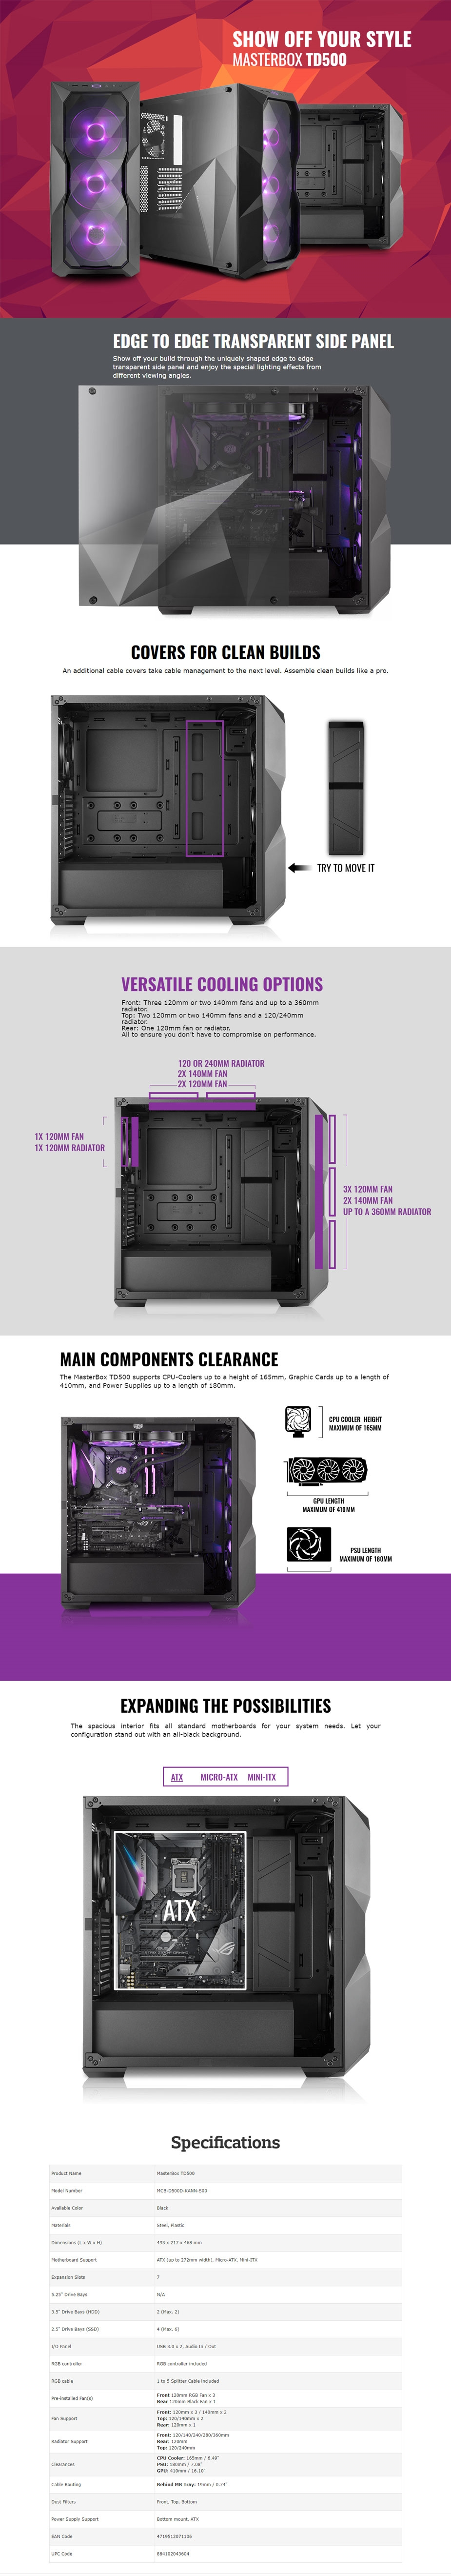 Cooler Master MasterBox TD500 RGB ATX Mid-Tower Case Display Overview 1